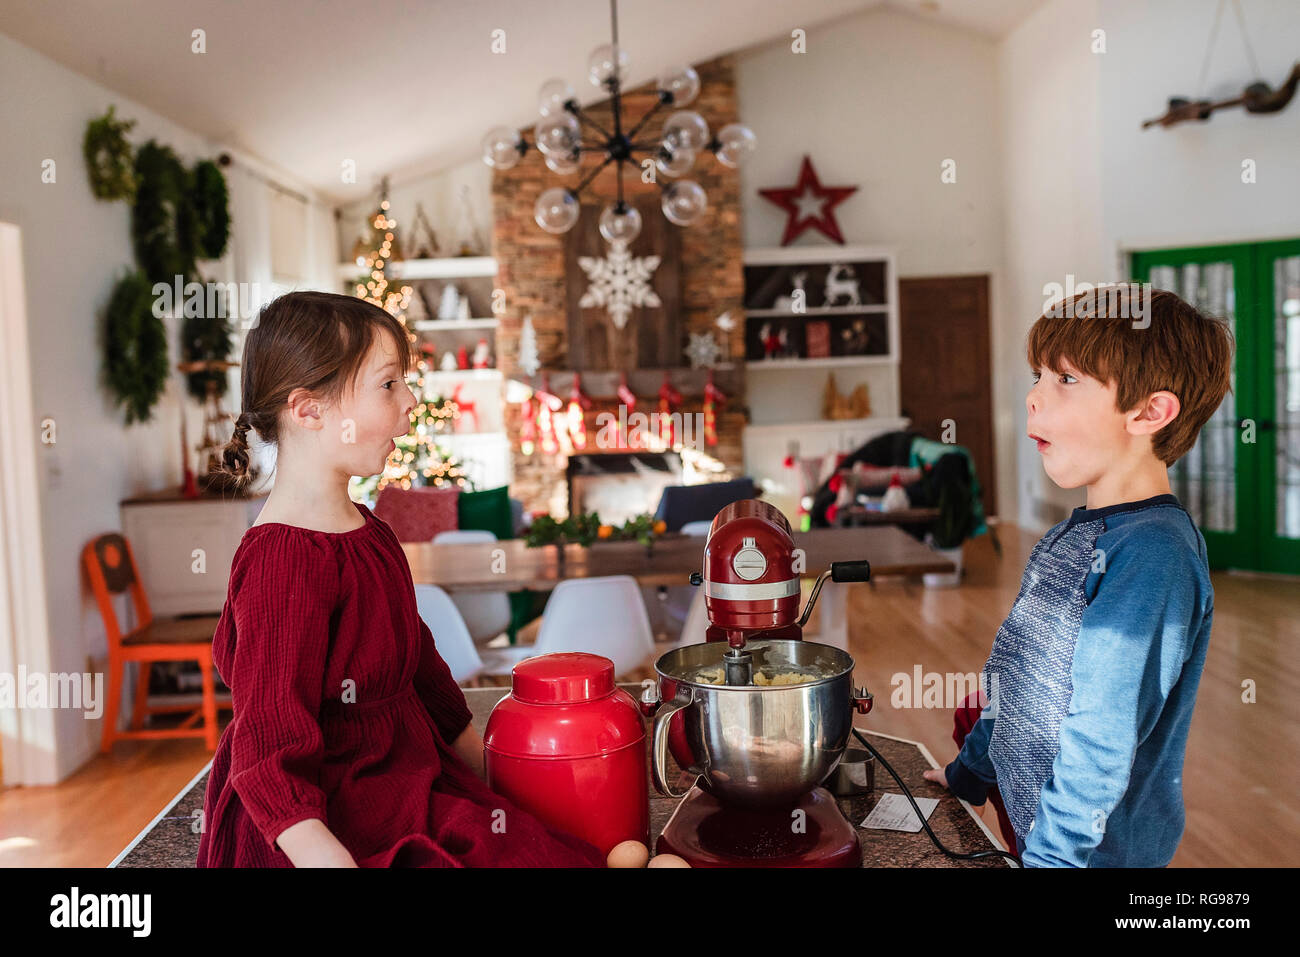 Two children messing about in the kitchen making a cake - Stock Image